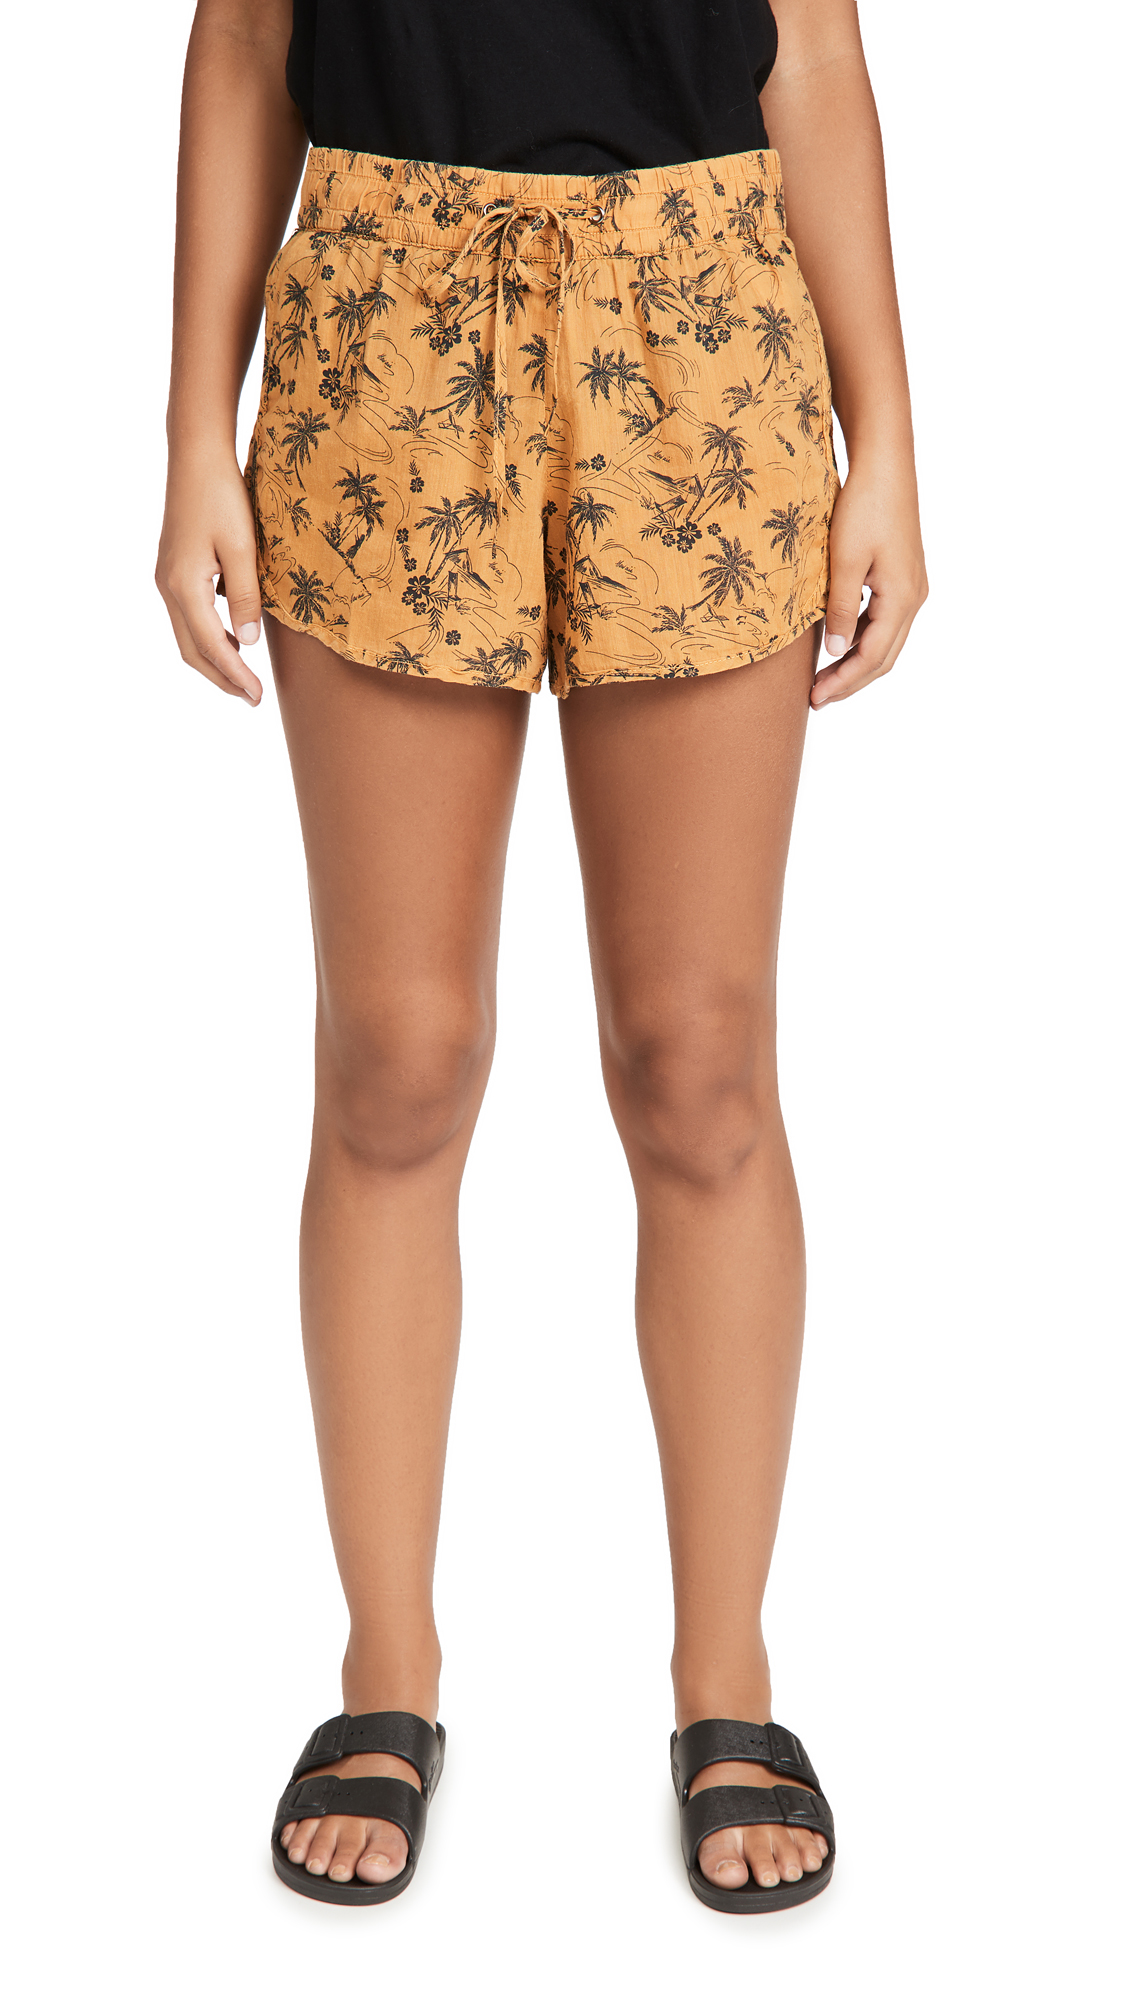 James Perse Island Print Dolphin Shorts